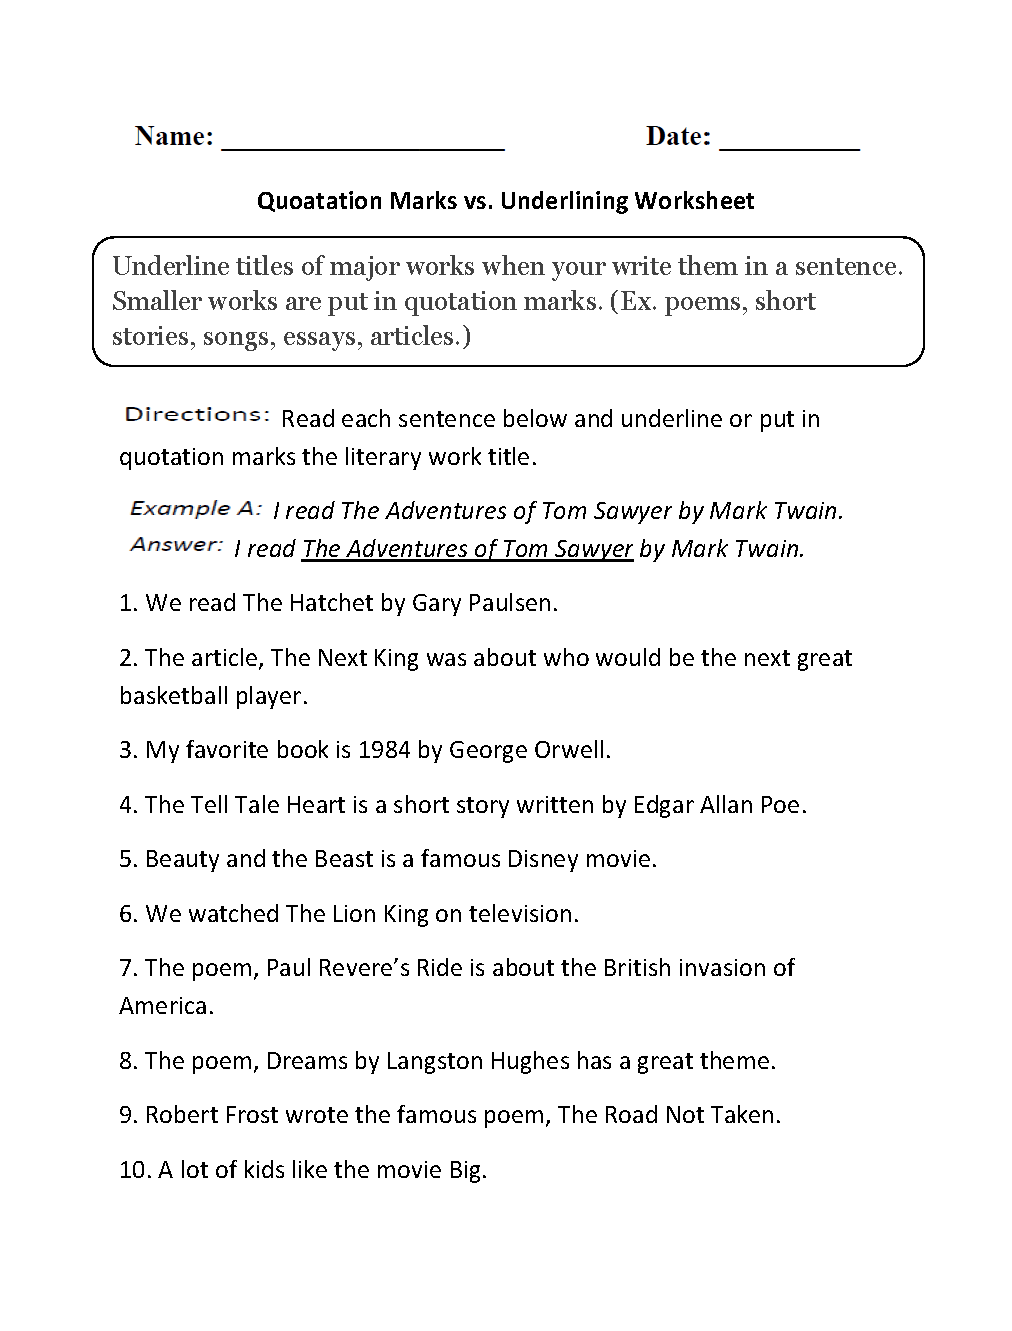 grammar mechanics worksheets italics and underlining worksheets quotation marks vs underlining worksheets